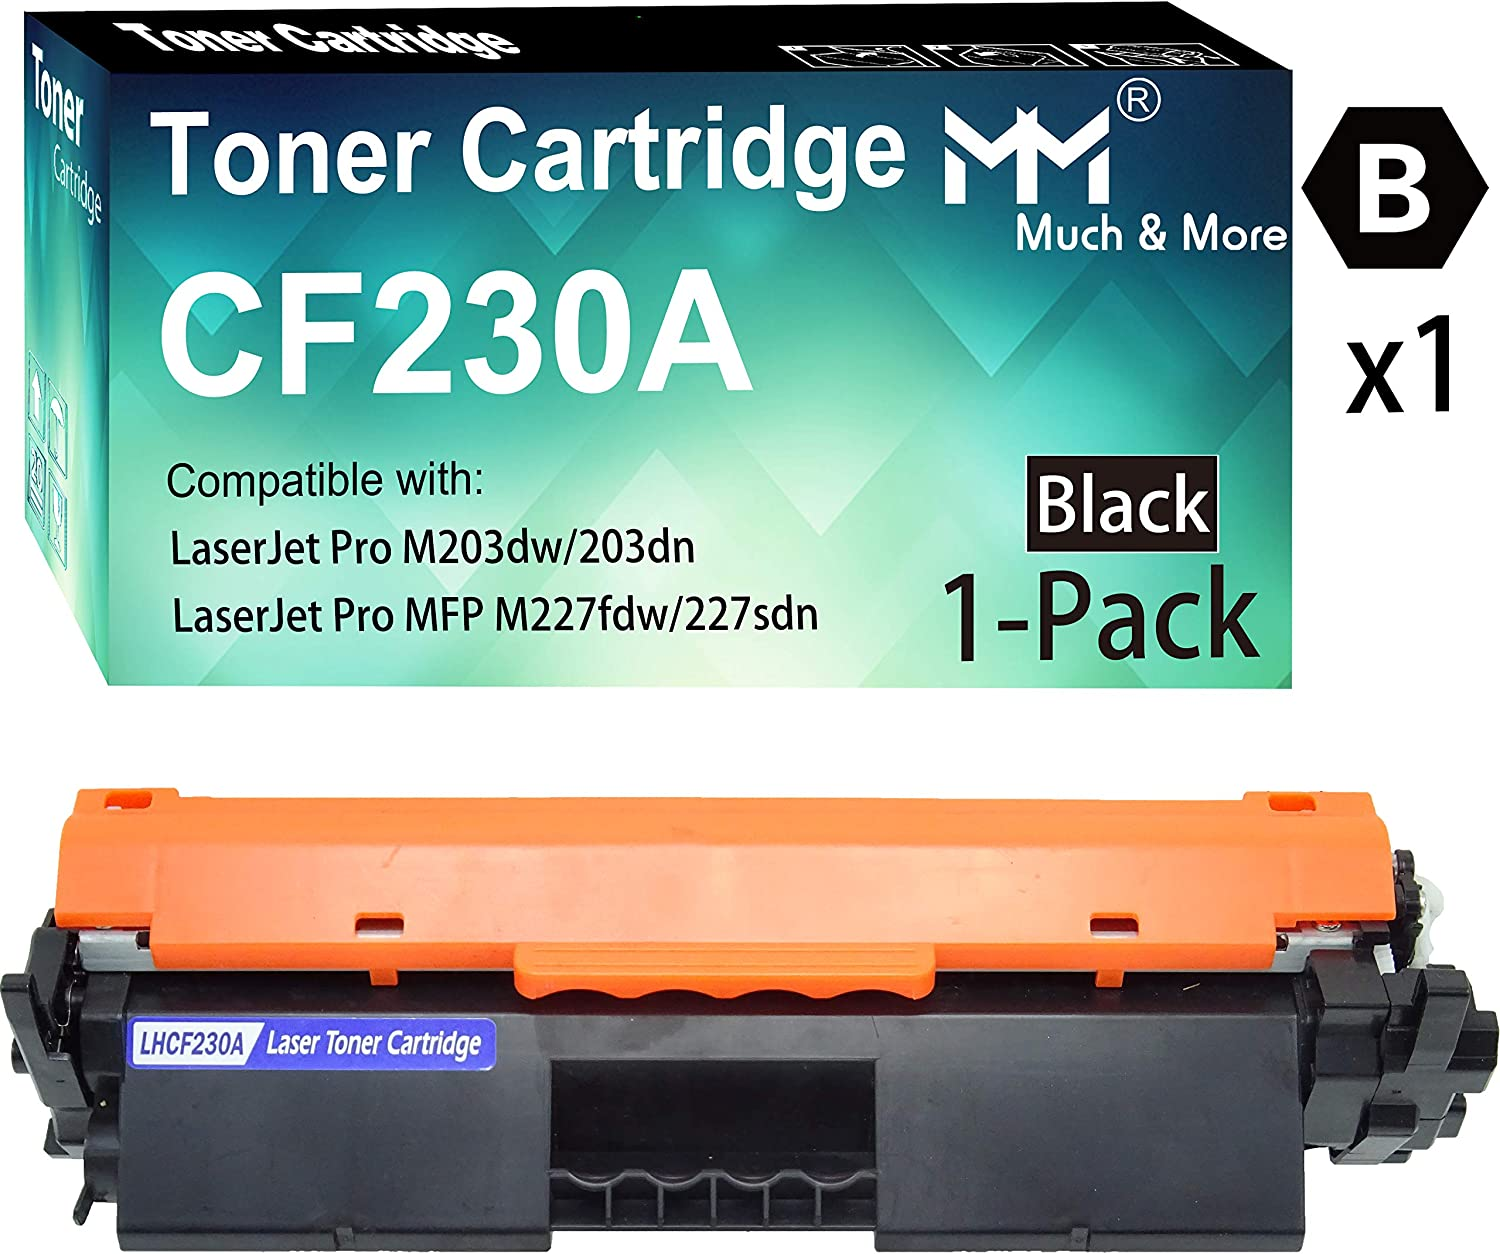 (1-Pack, Black) Compatible 30A CF230A 30X Toner Cartridge CF-230A Used for HP Laserjet Pro M203d M203dn M203dw MFP M227d MFP M227fdn MFP M227fdw Printer, Sold by MuchMore